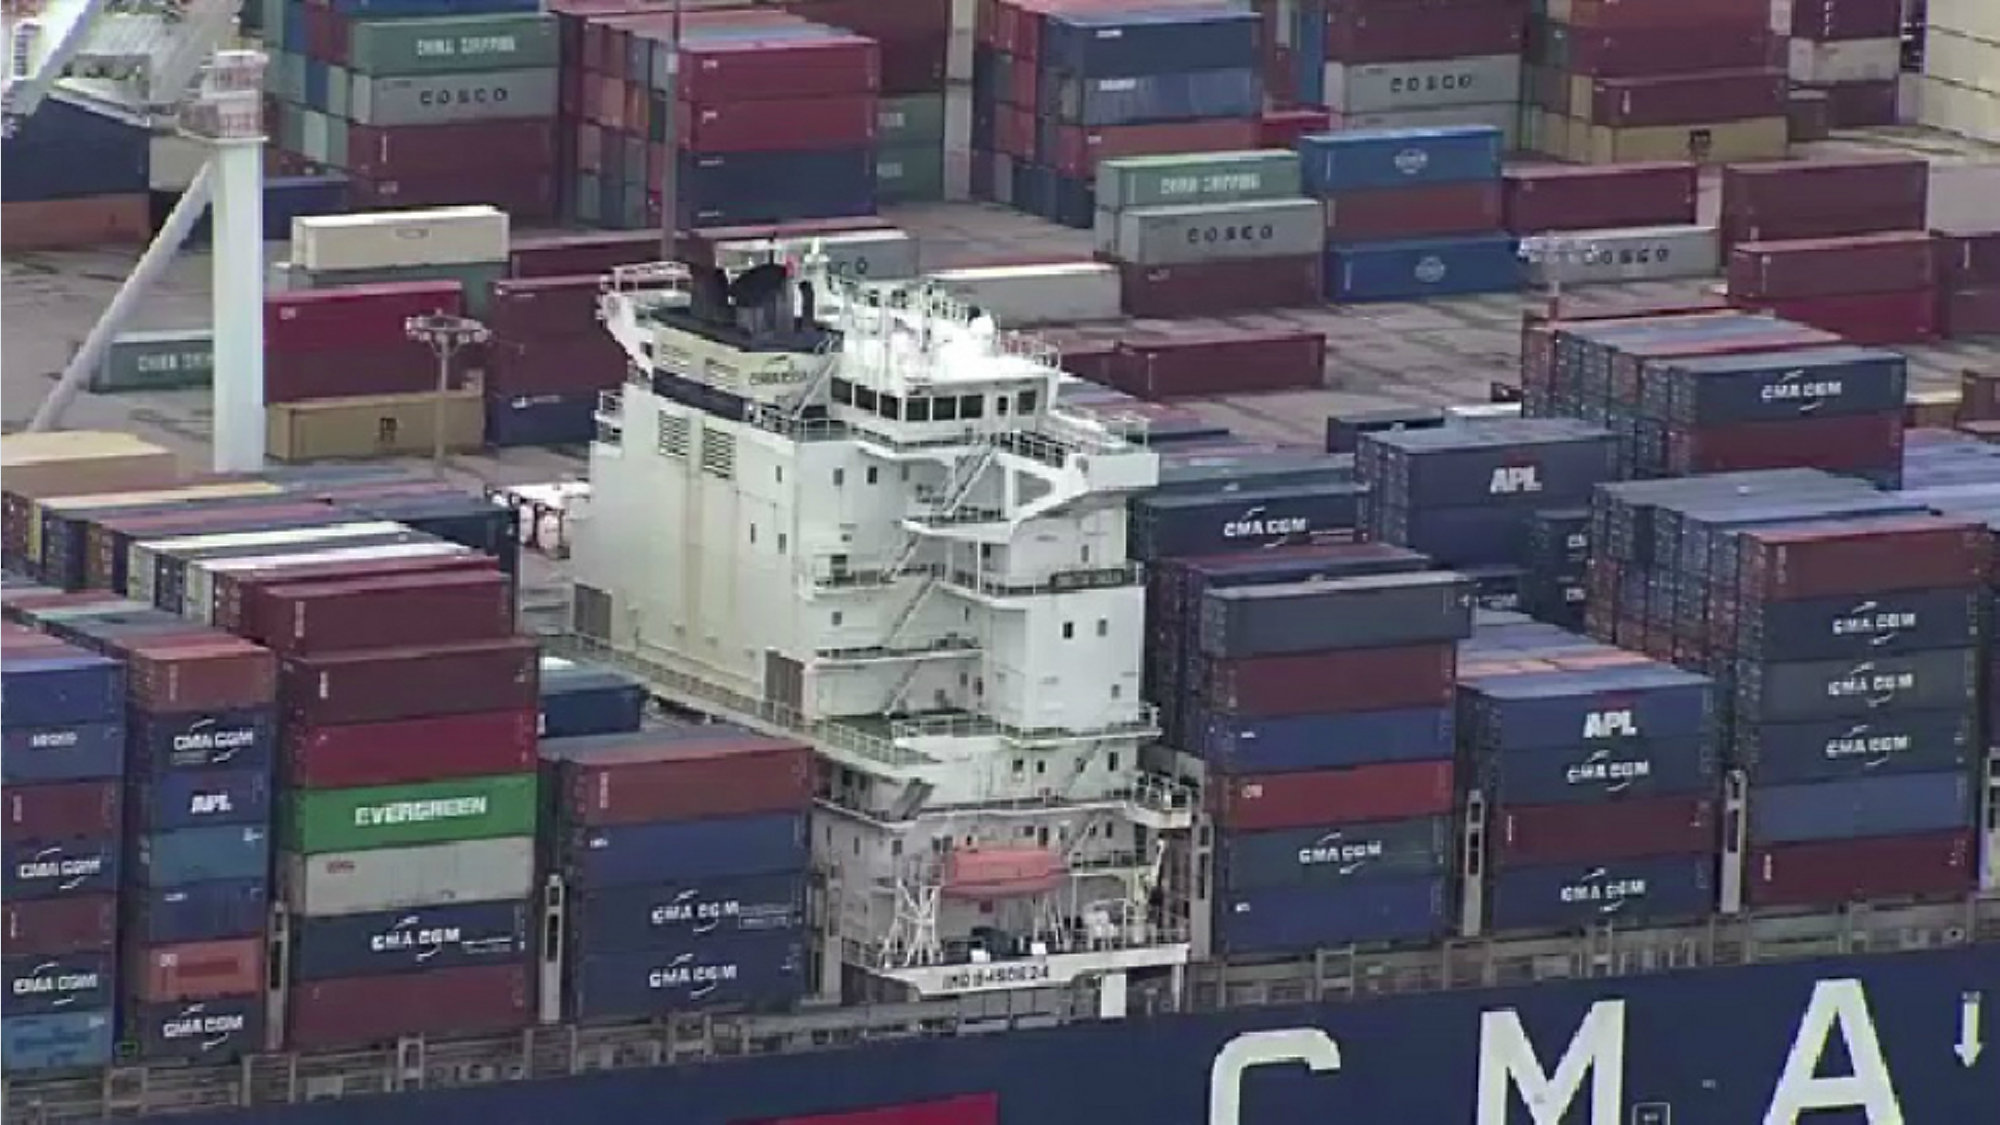 8,000 Containers: Port Welcomes Largest Container Ship